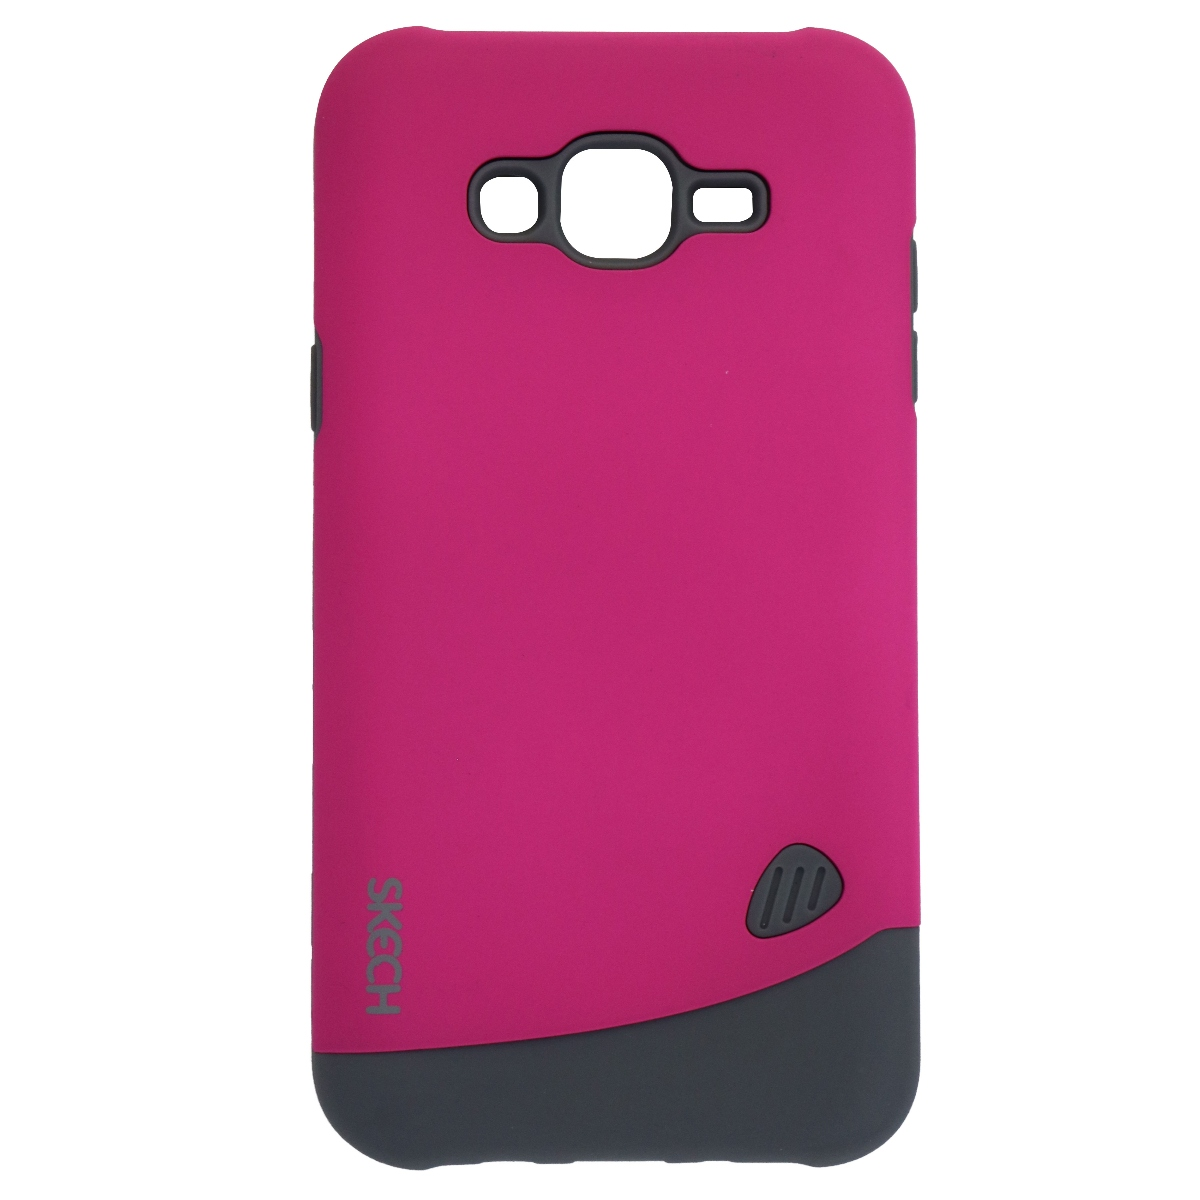 Skech Bounce Series Dual Layer Case Cover for Samsung Galaxy J7 - Matte Pink